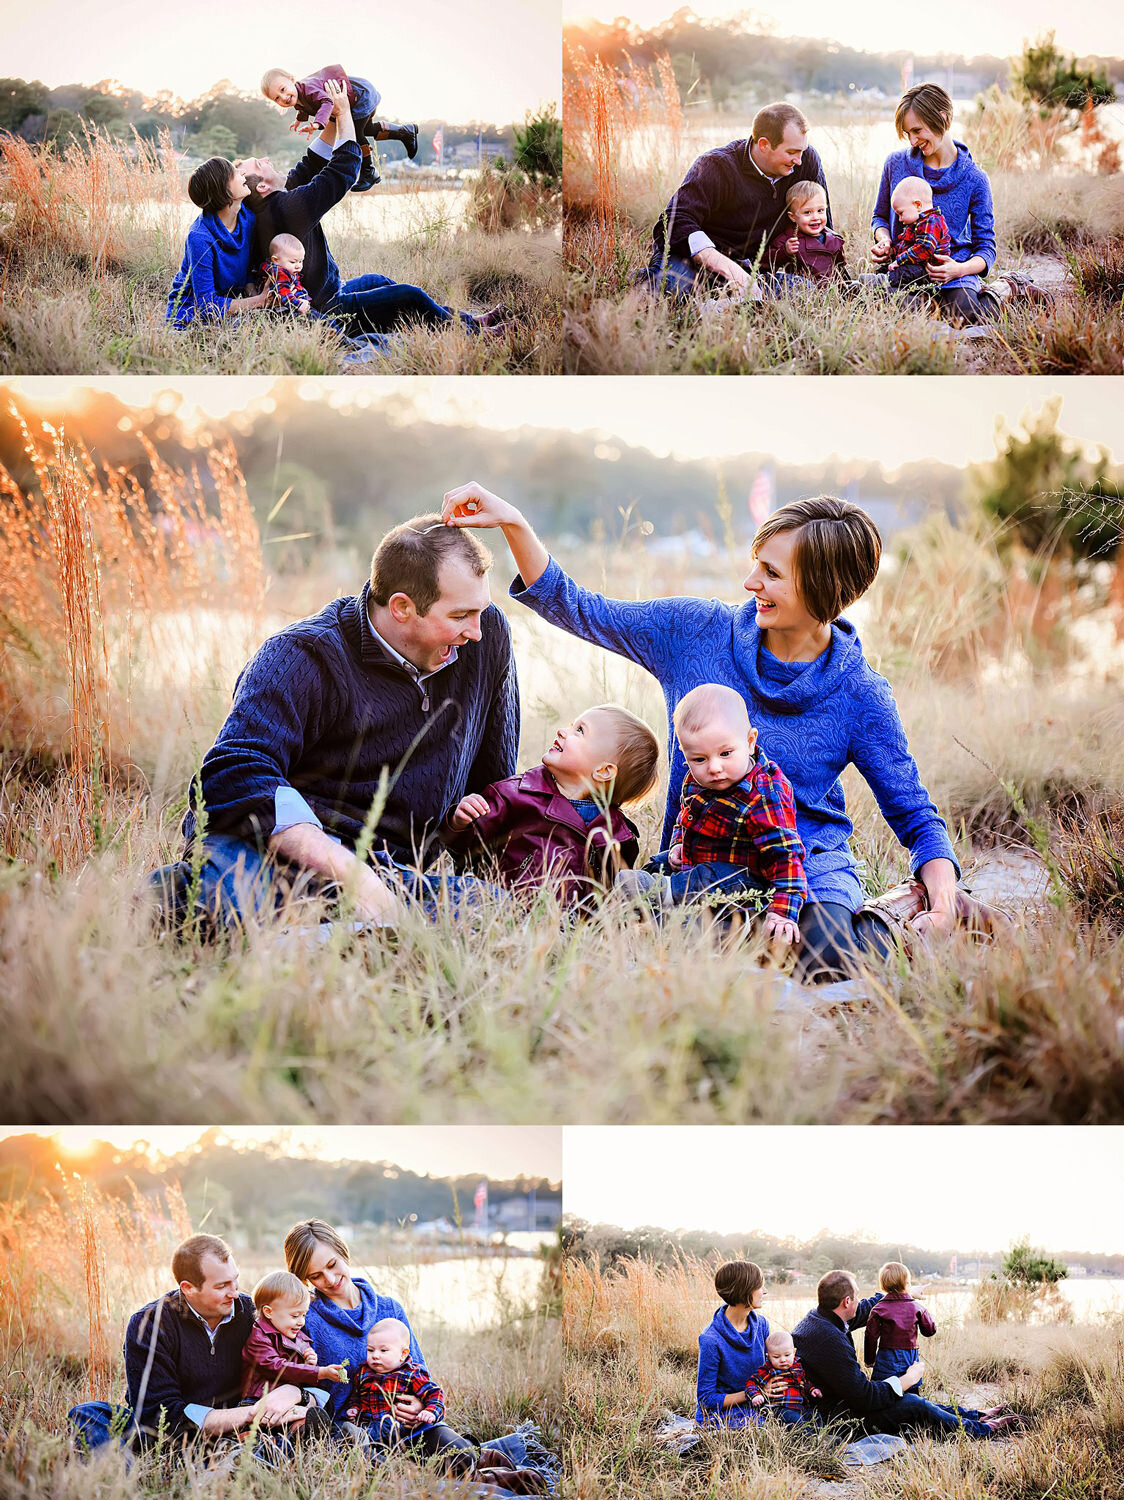 family-photo-session-fall-themed-melissa-bliss-photography-norfolk-va.jpg